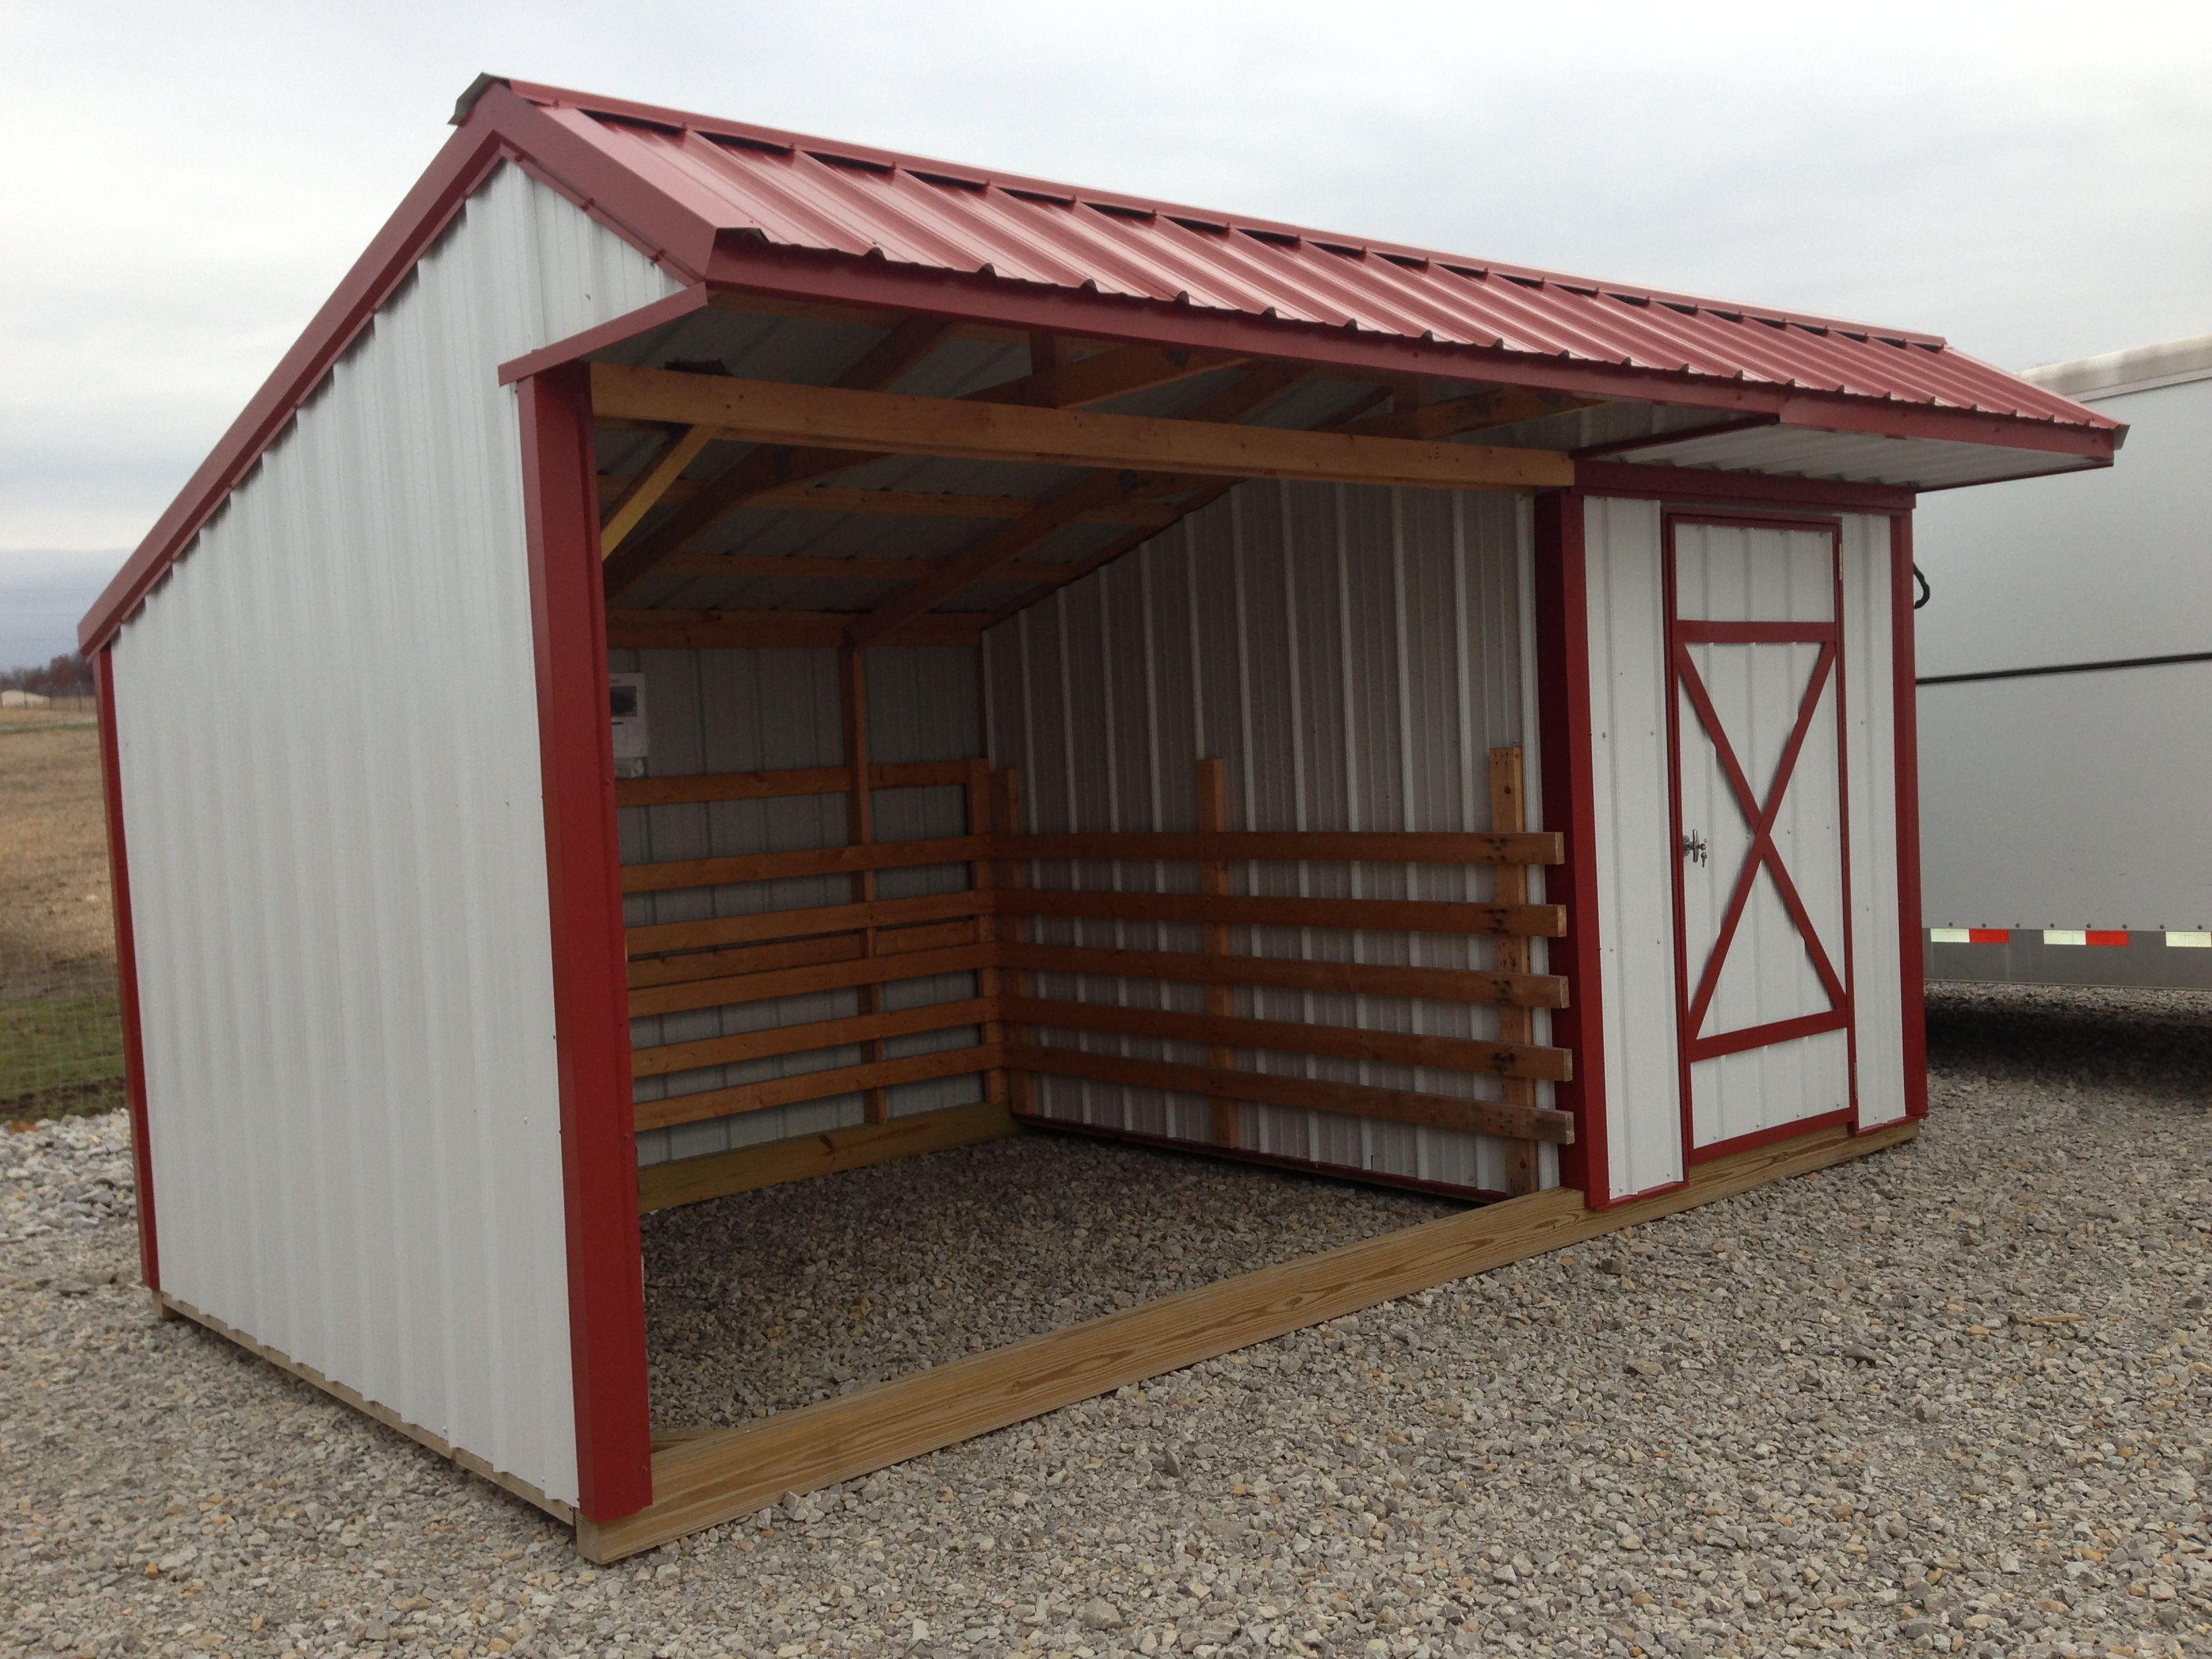 Portable pet and livestock shelters in cameron mo for Small portable shed